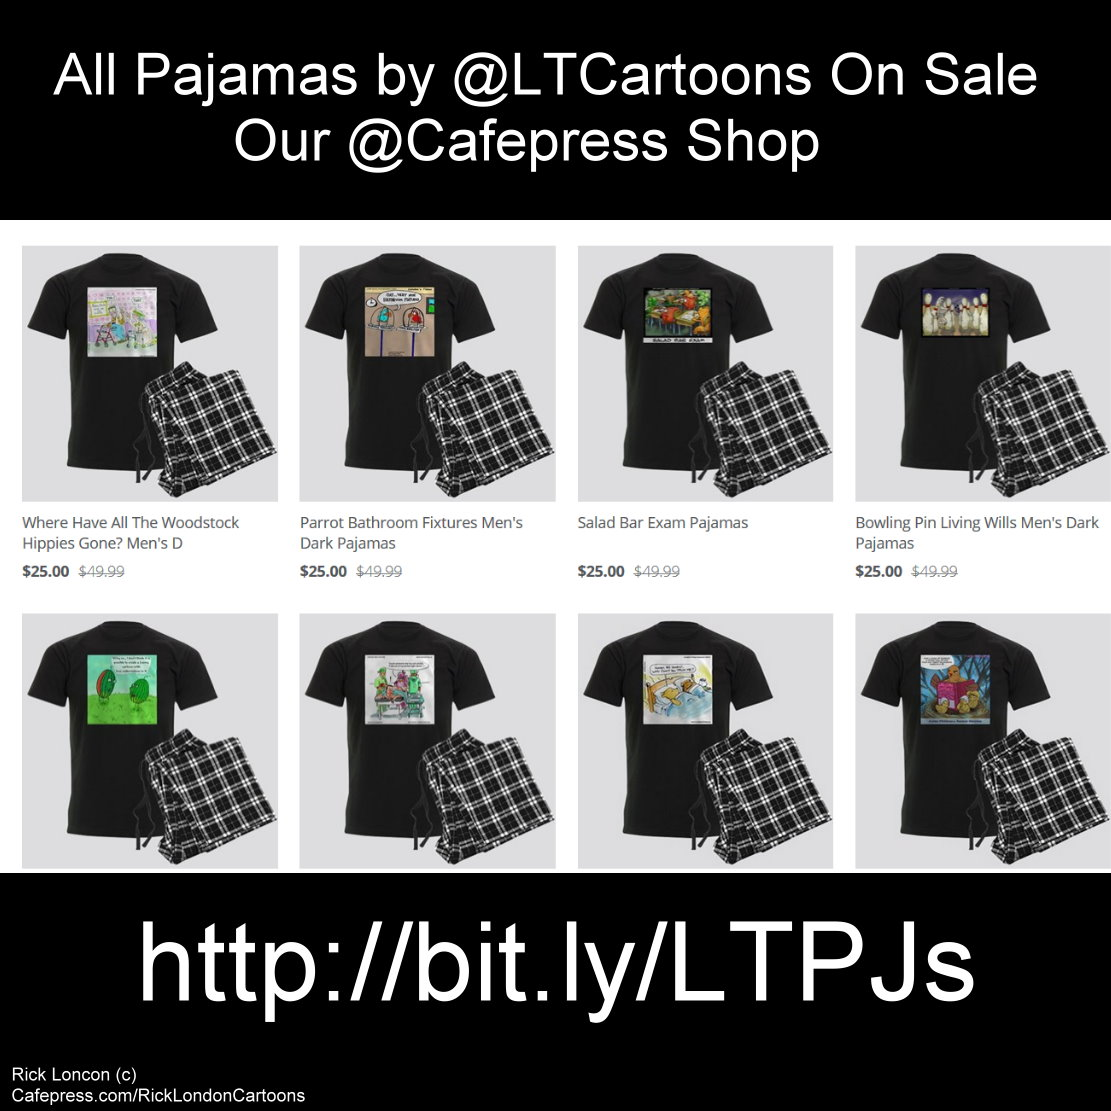 #Wonderful & #Funny #Pajamas by Google #1 Ranked #offbeat #cartoon #Giftshop @LTCartoons #Giftshop @cafepress Order from the #convenience & #security of your own home #Deals #discount #funny #gift #PJs #gifts 🌏 #Worldwideshipping #humor #gift  #savemoney